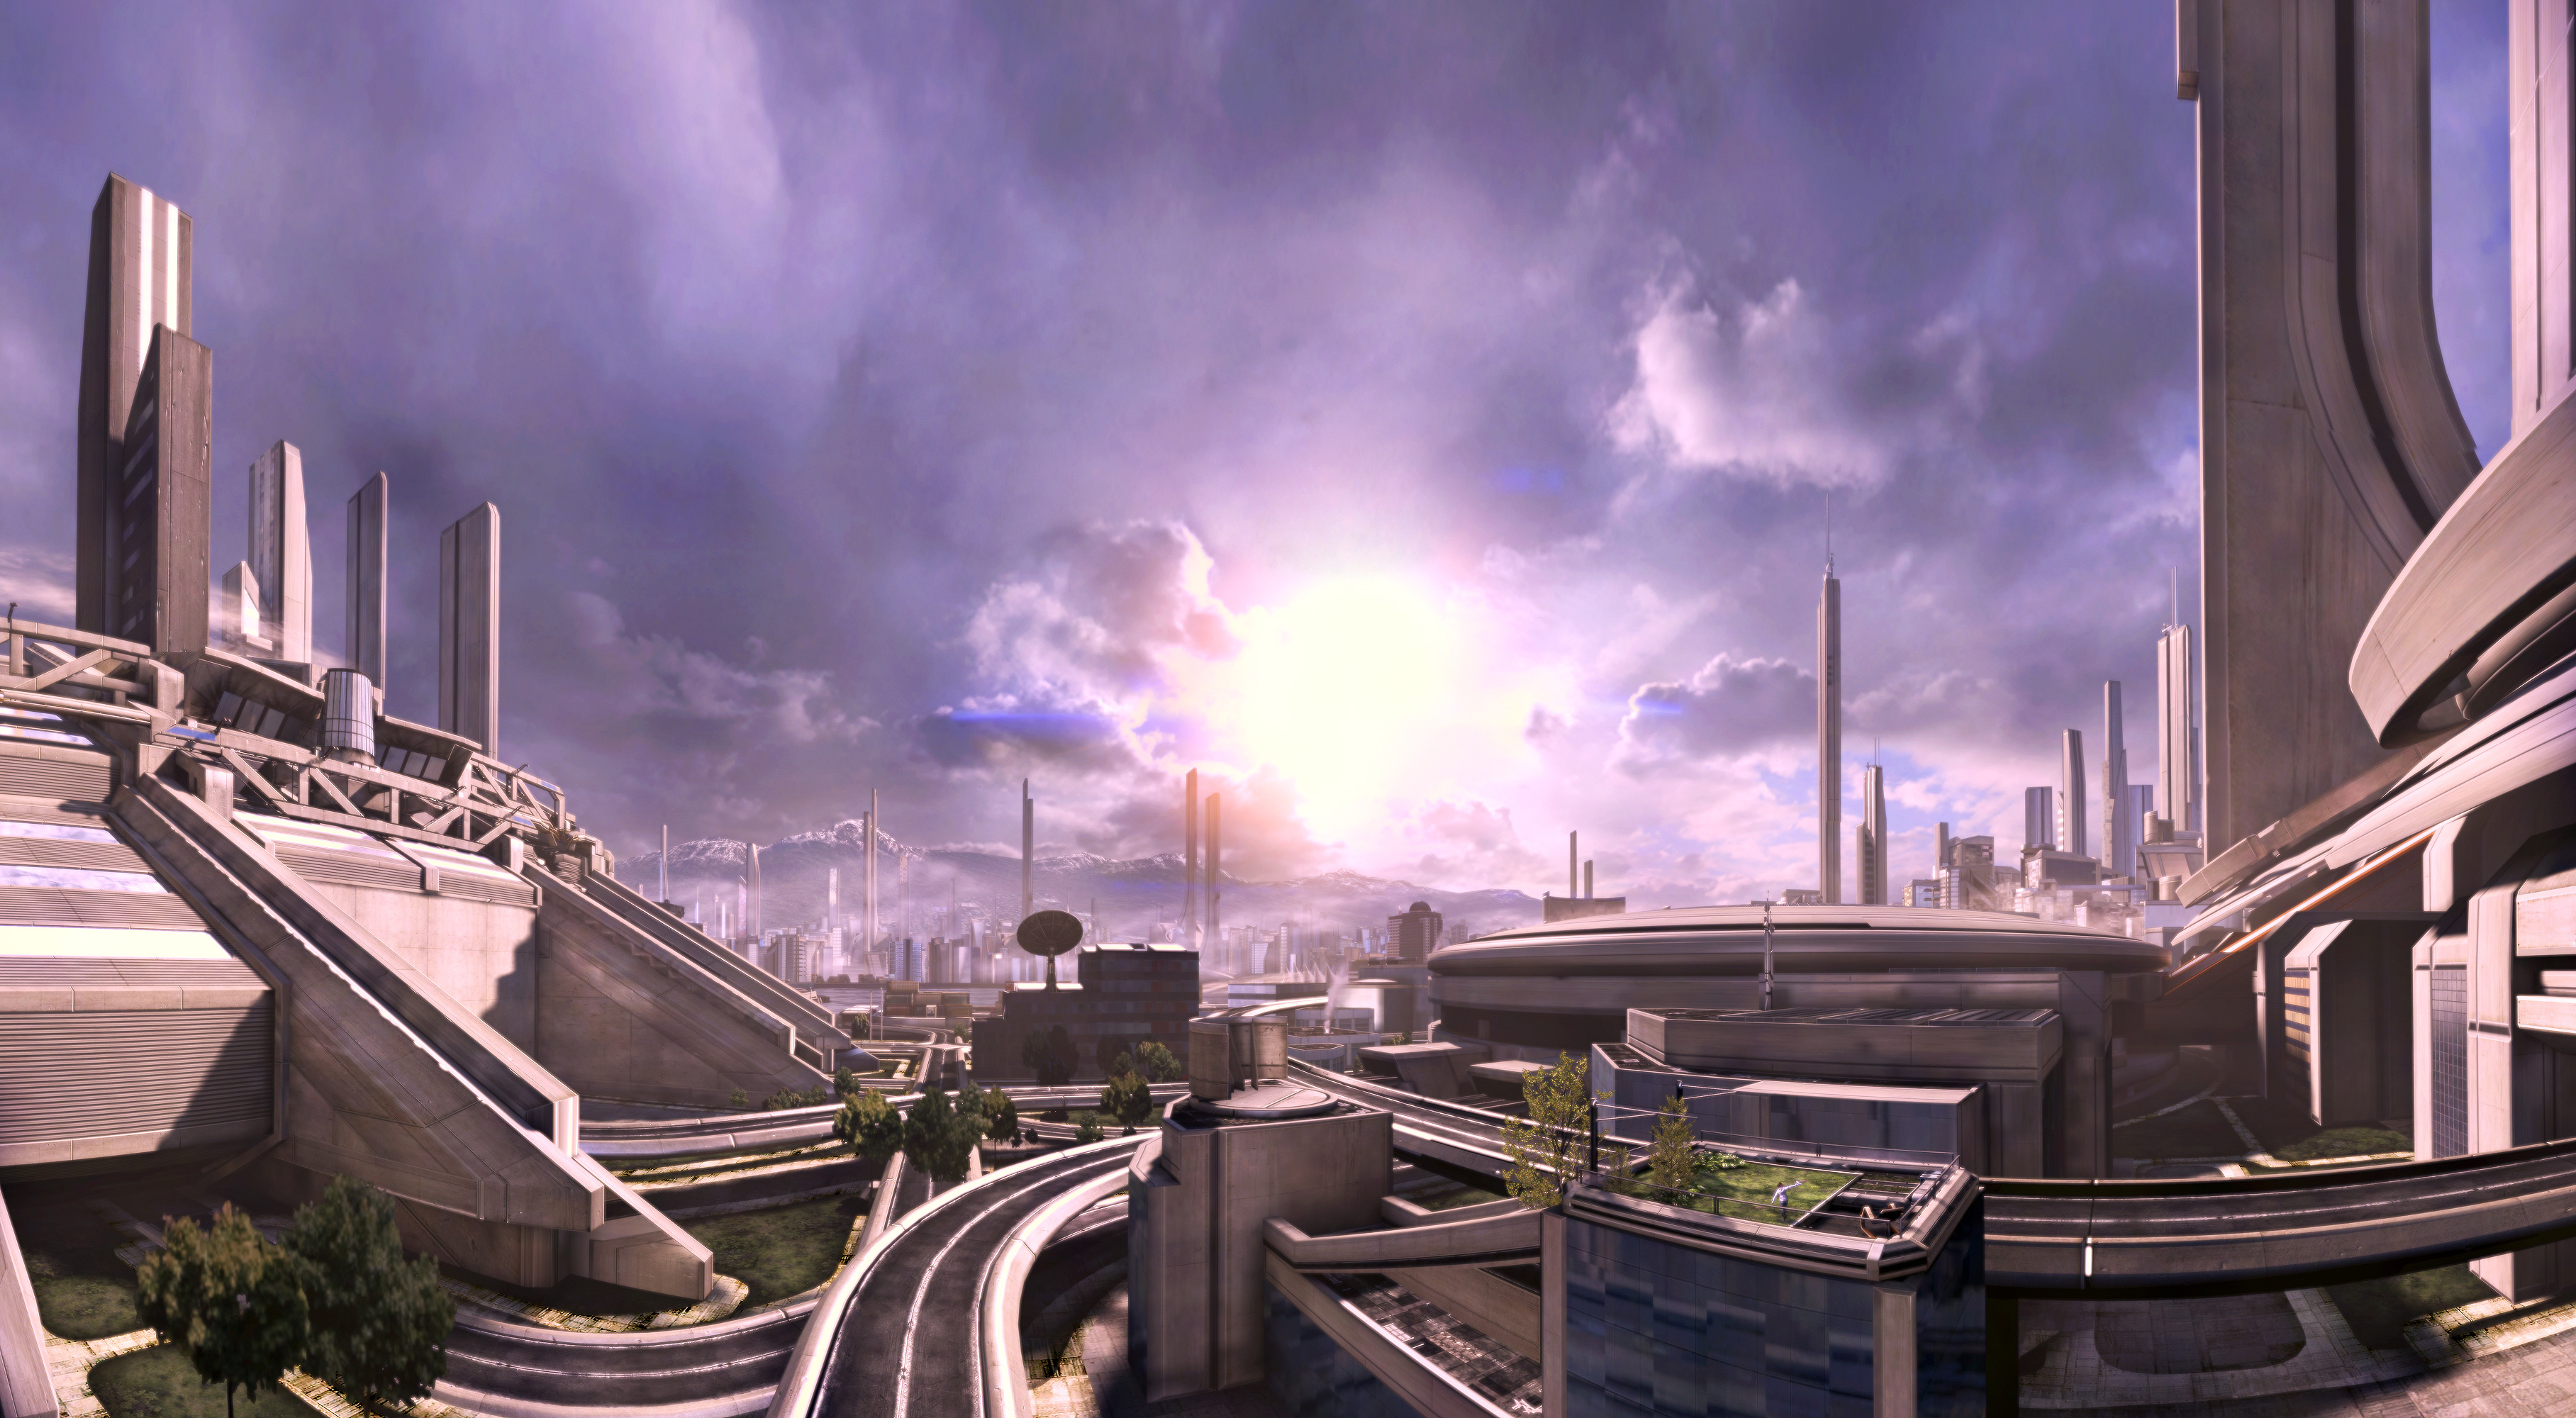 General 3633x2000 Mass Effect Citadel (Mass Effect) space station science fiction space